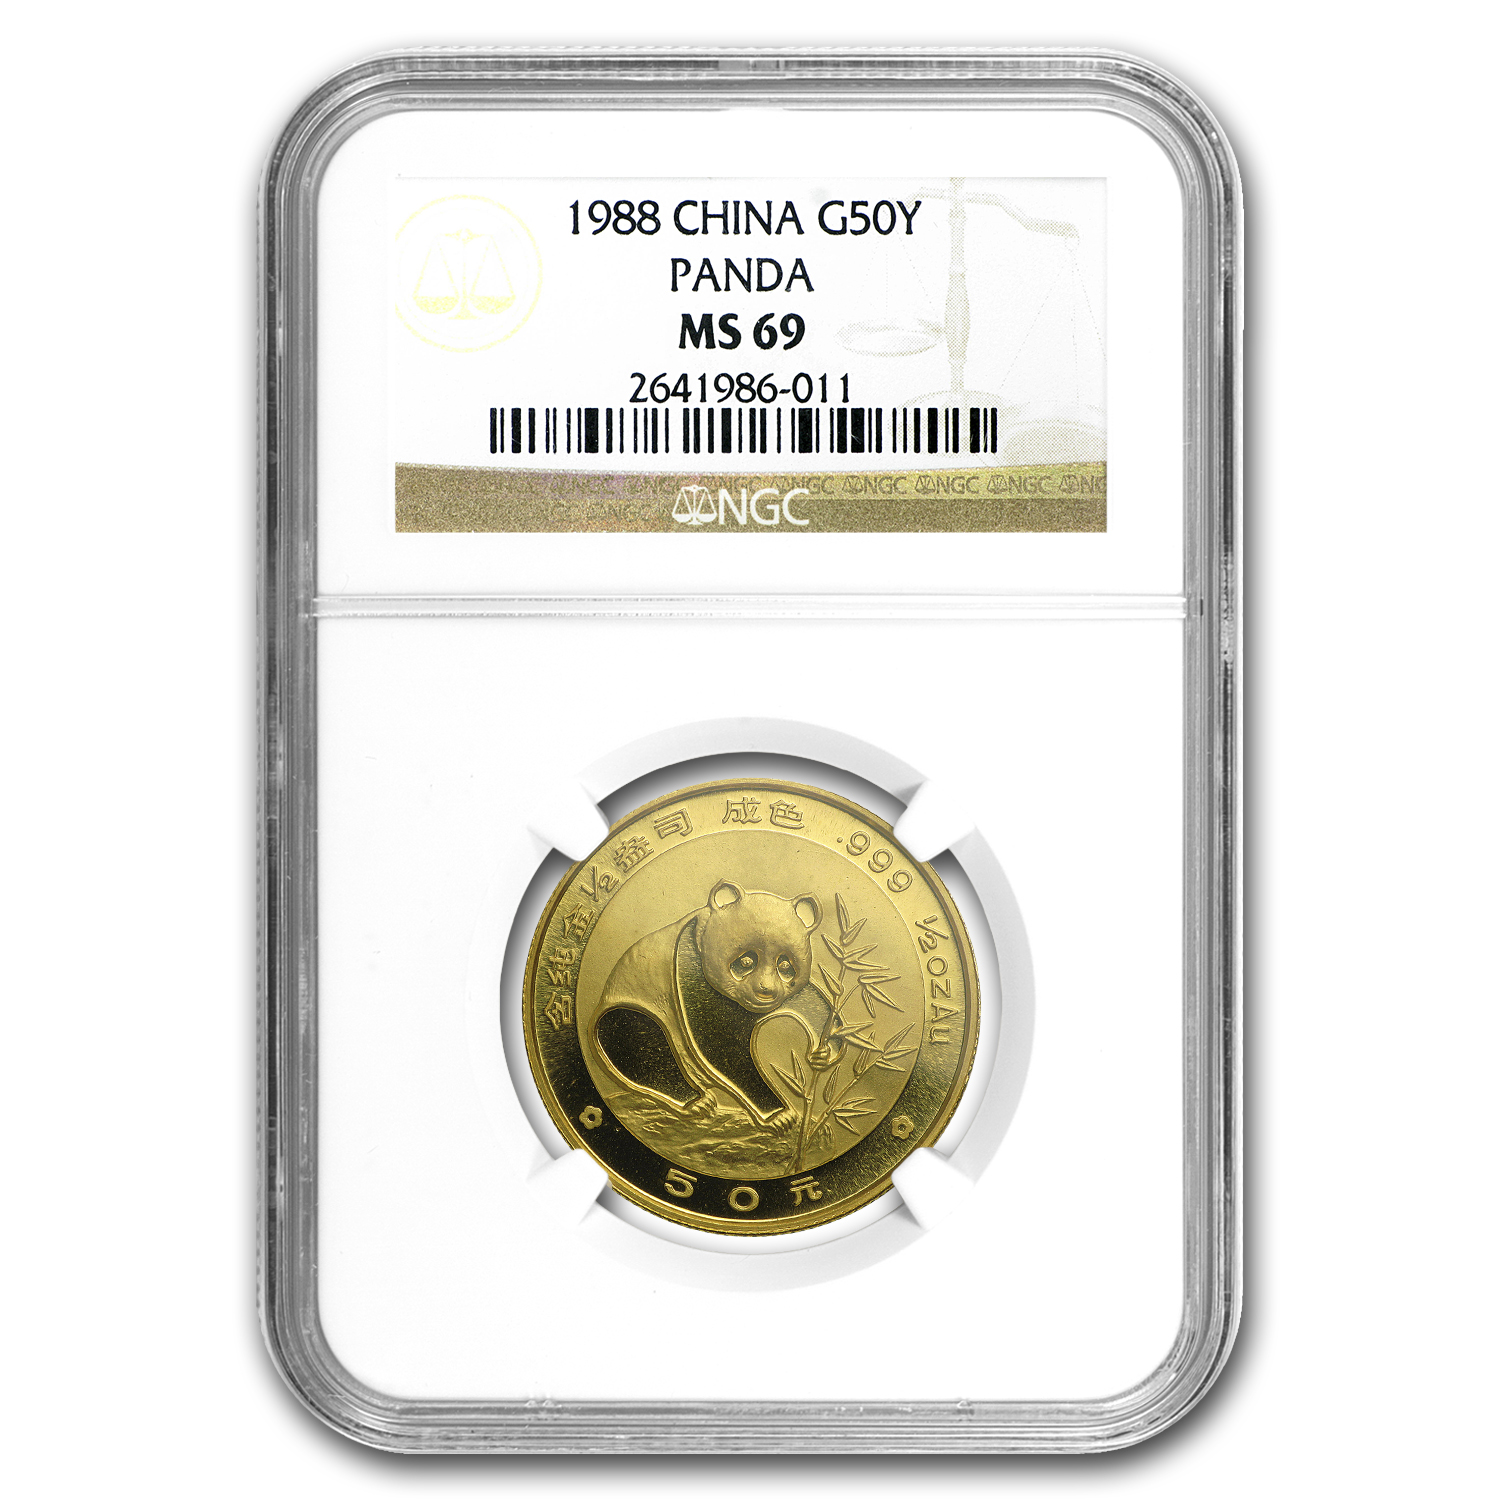 1988 China 1/2 oz Gold Panda MS-69 NGC